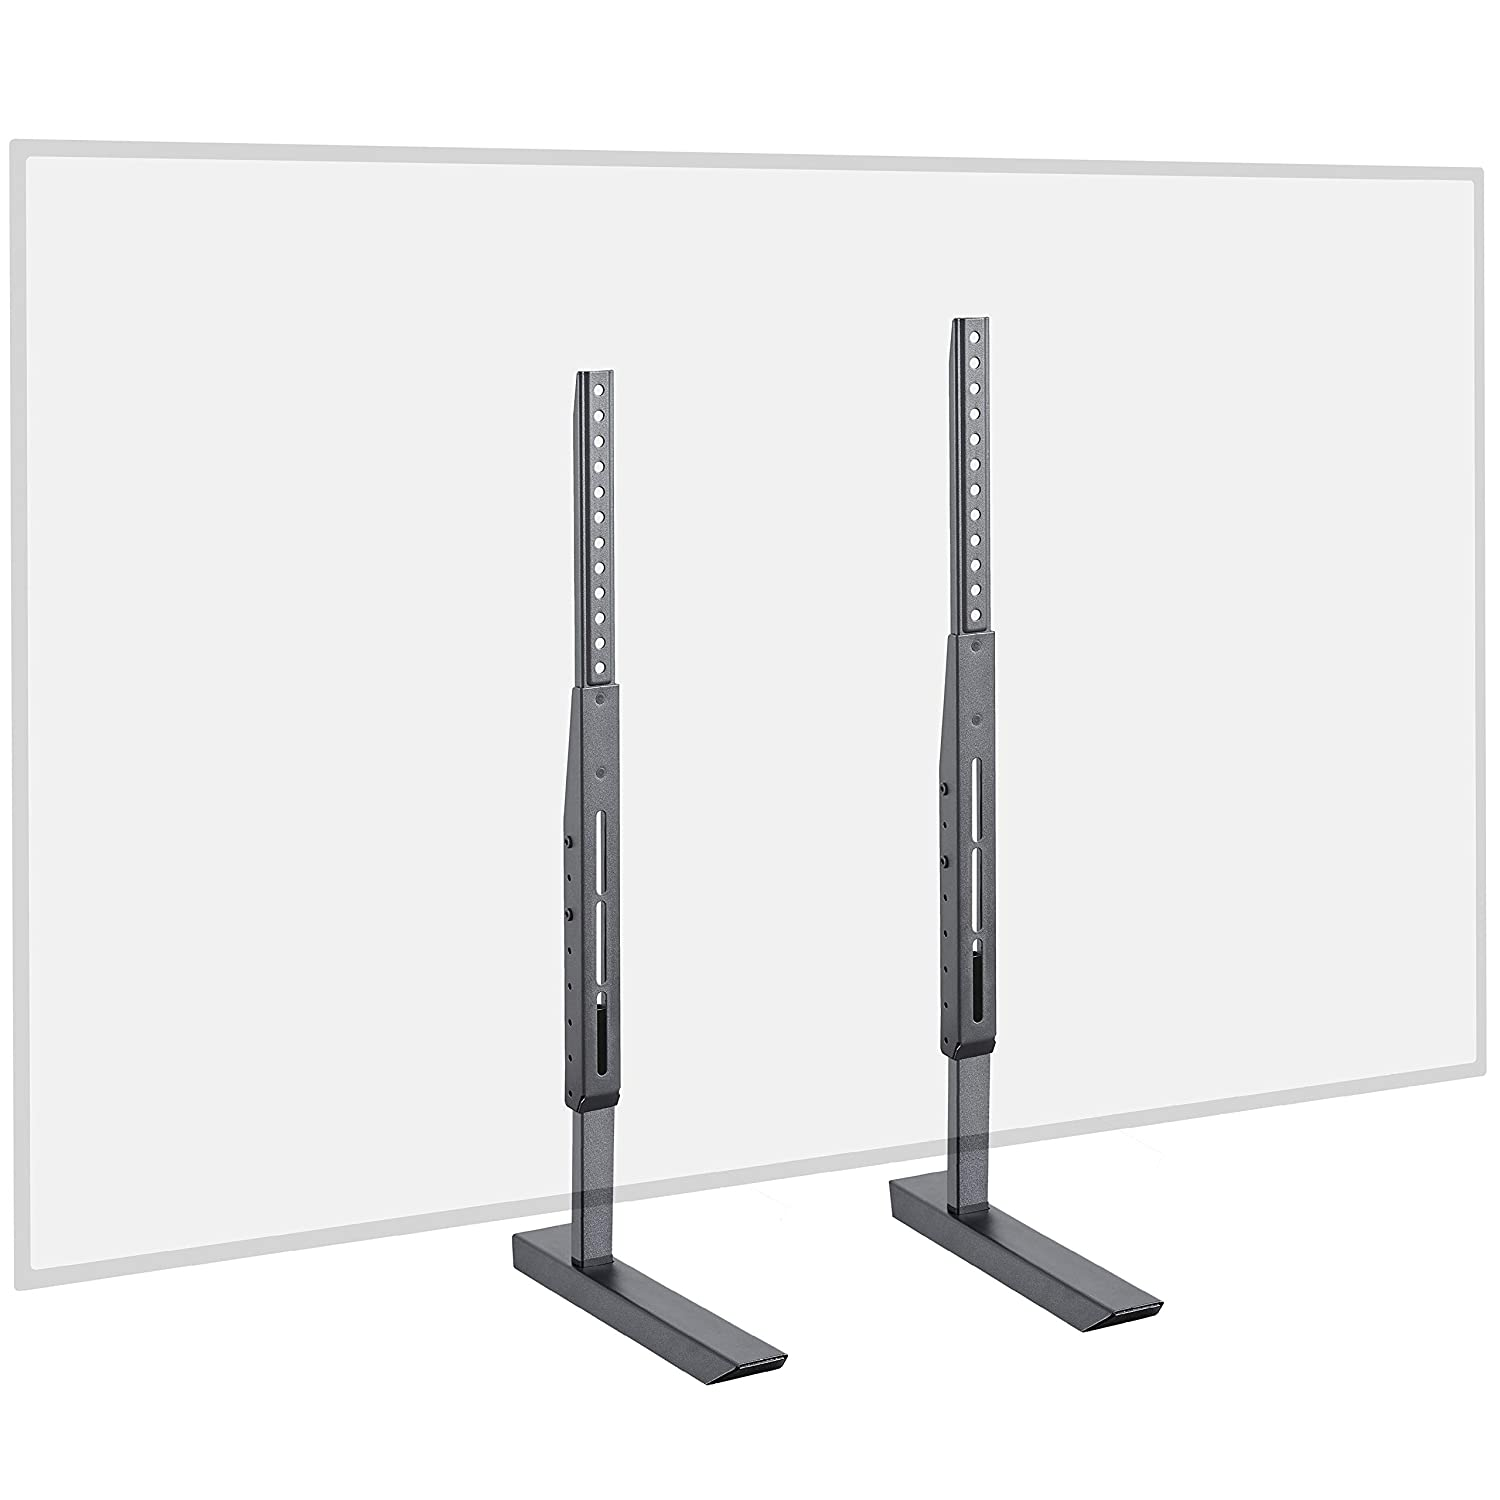 """Echogear Universal TV Stand - Height Adjustable Base For TVs Up to 77"""" - Wobble-Free Replacement Stand Works With Any TV Including Vizio, TCL, Samsung & More - Flat Design Is Compatible With Soundbars"""